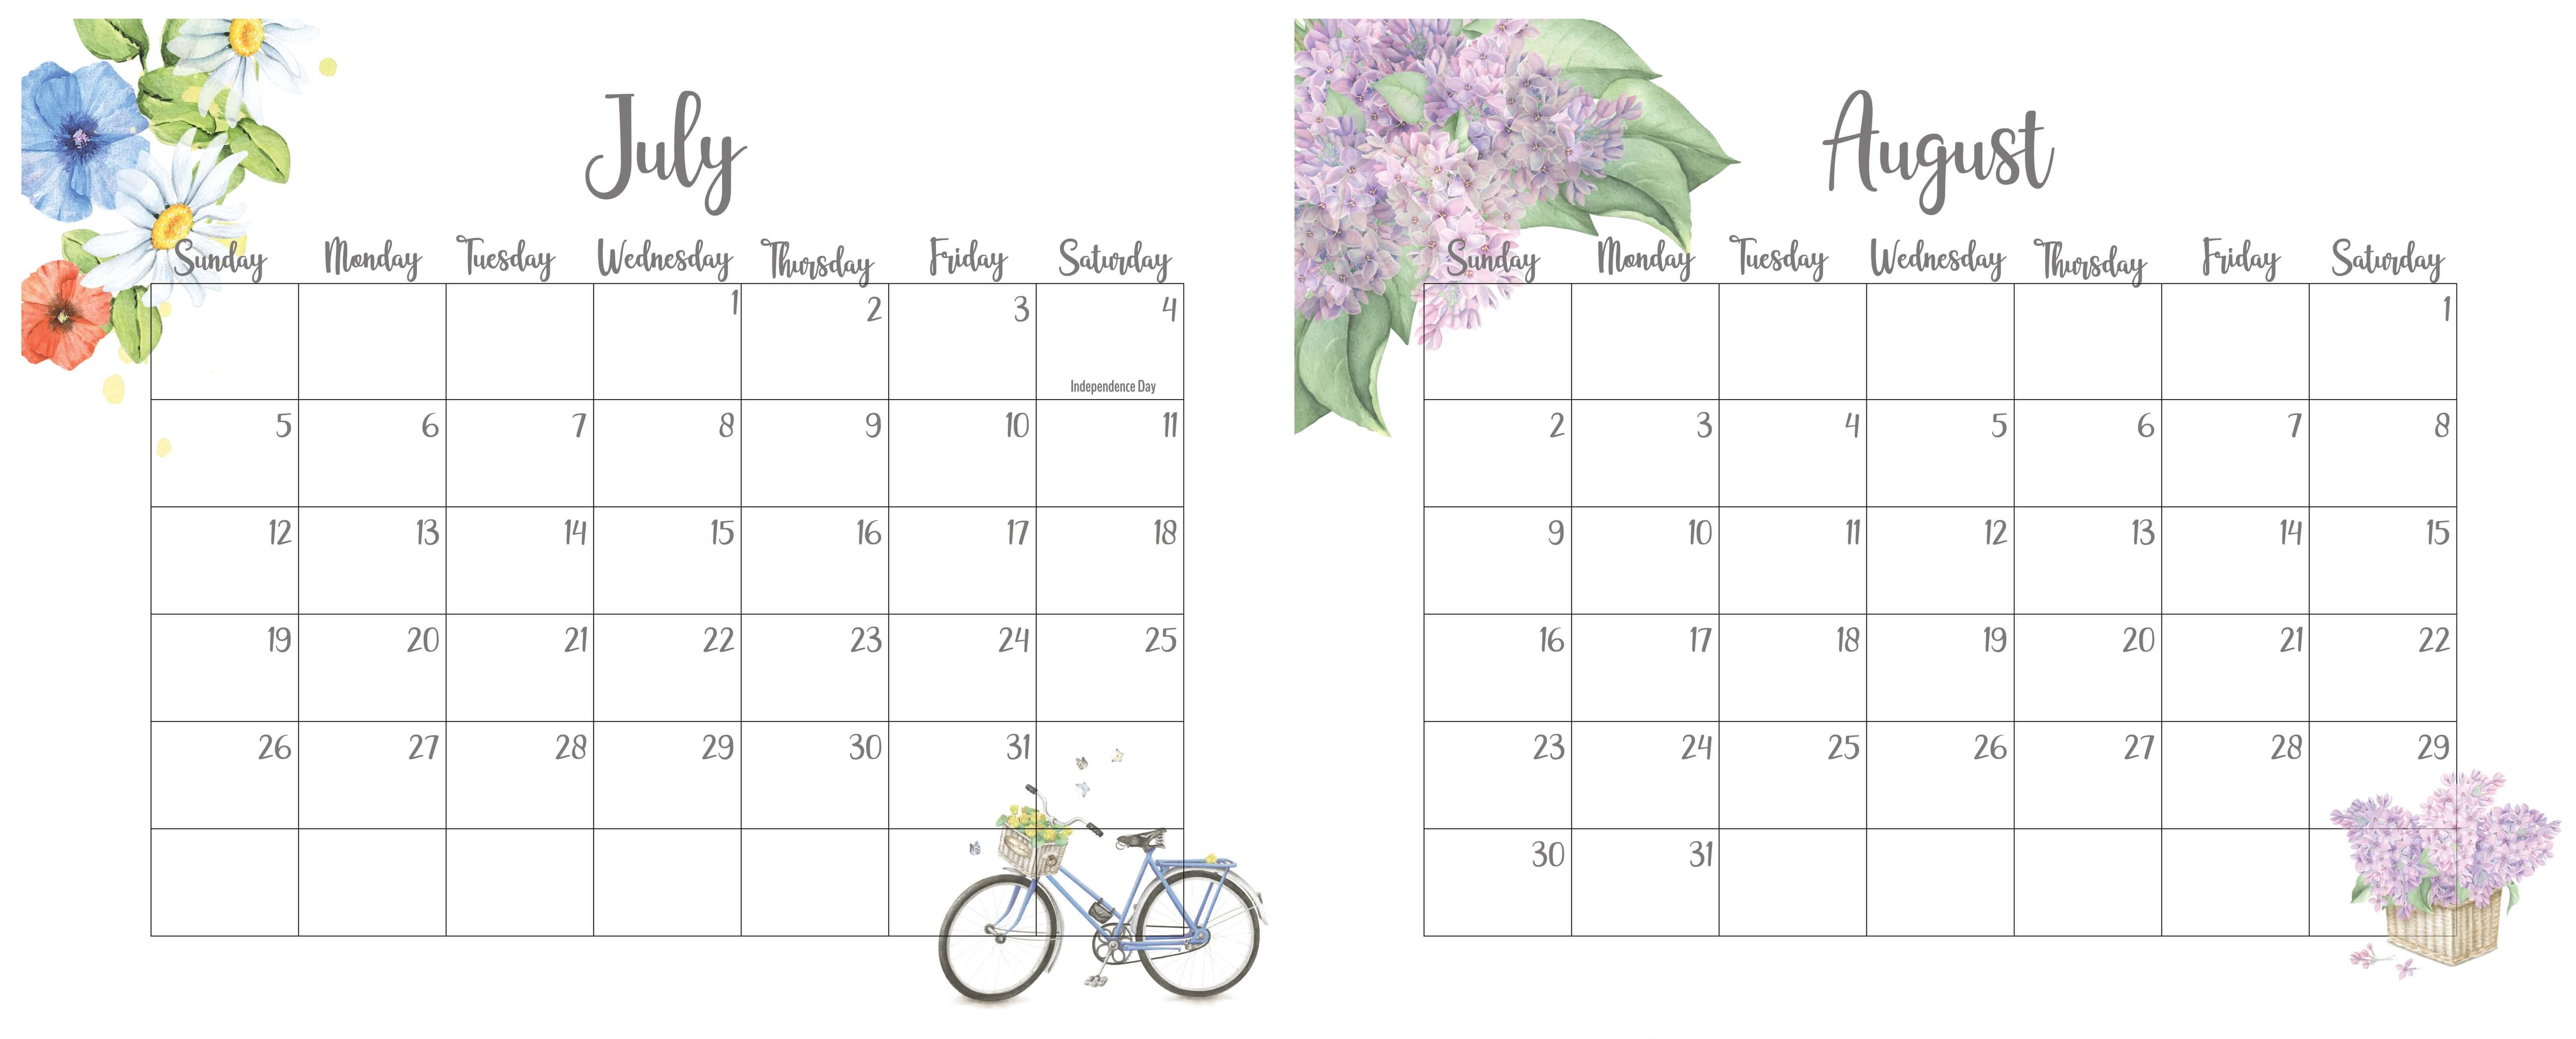 July August 2020 Calendar With Holidays